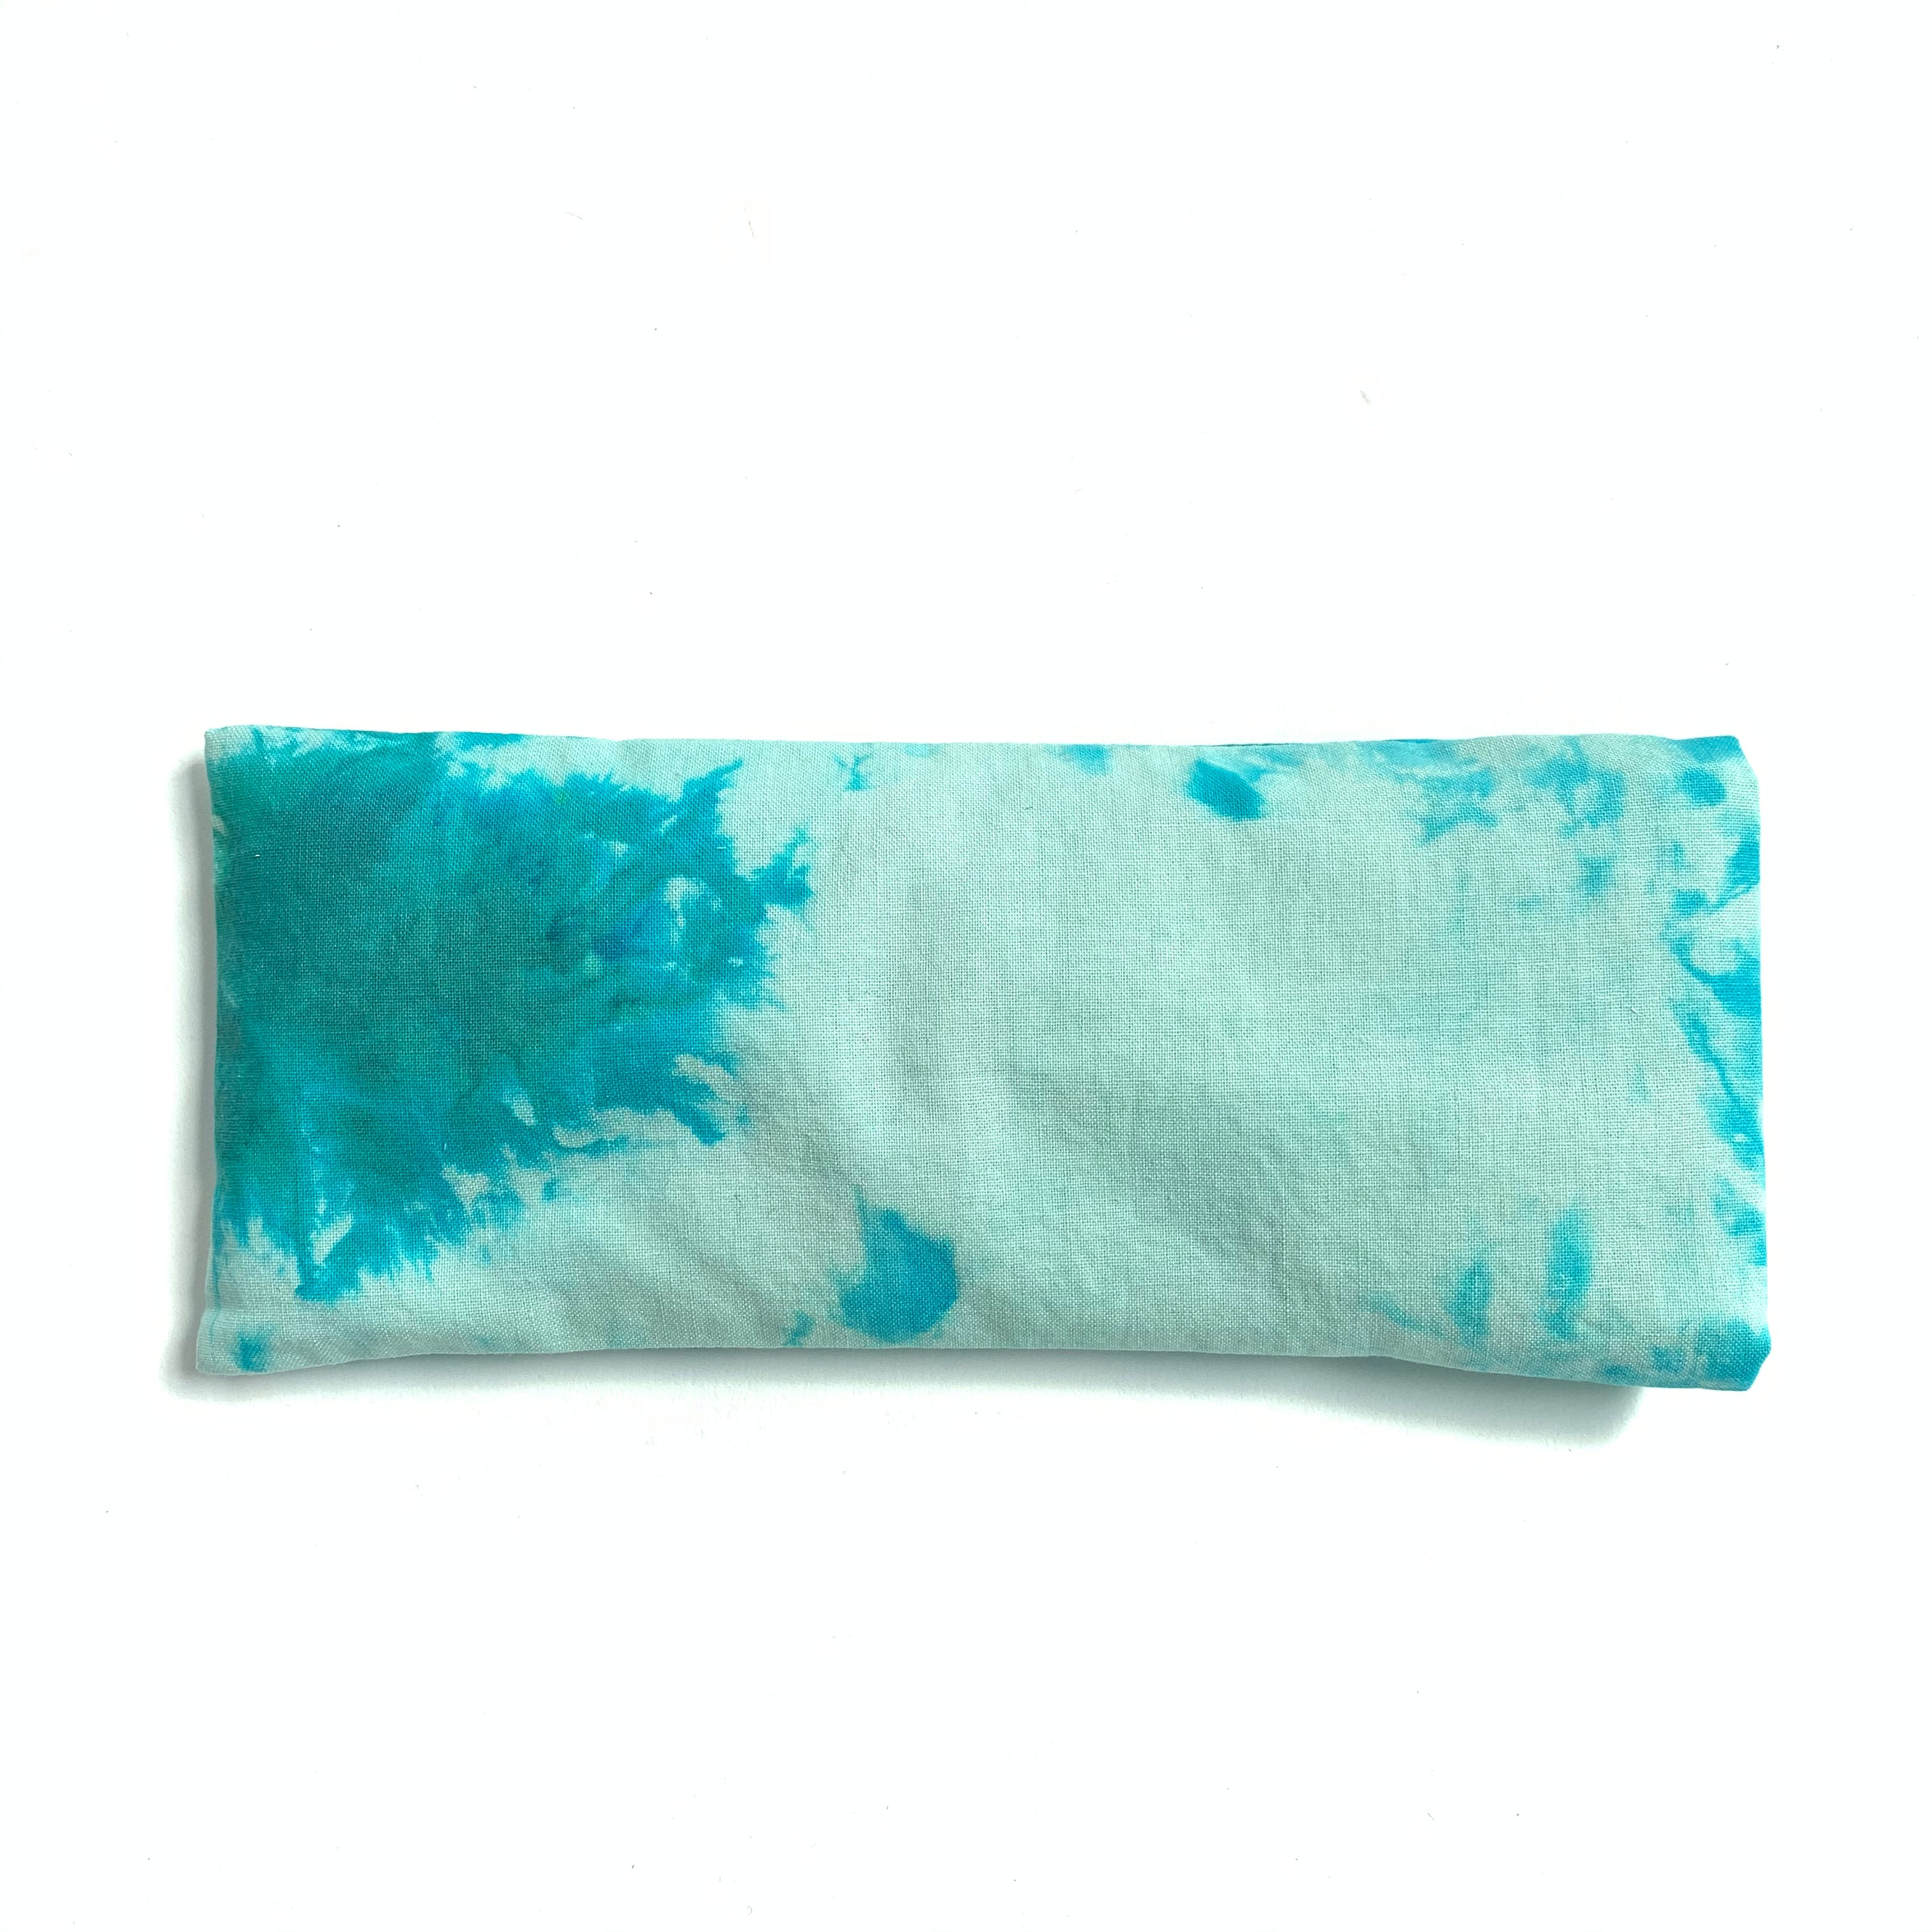 Lavender Eye Pillow - Hand-dyed Turquoise - Samyoga